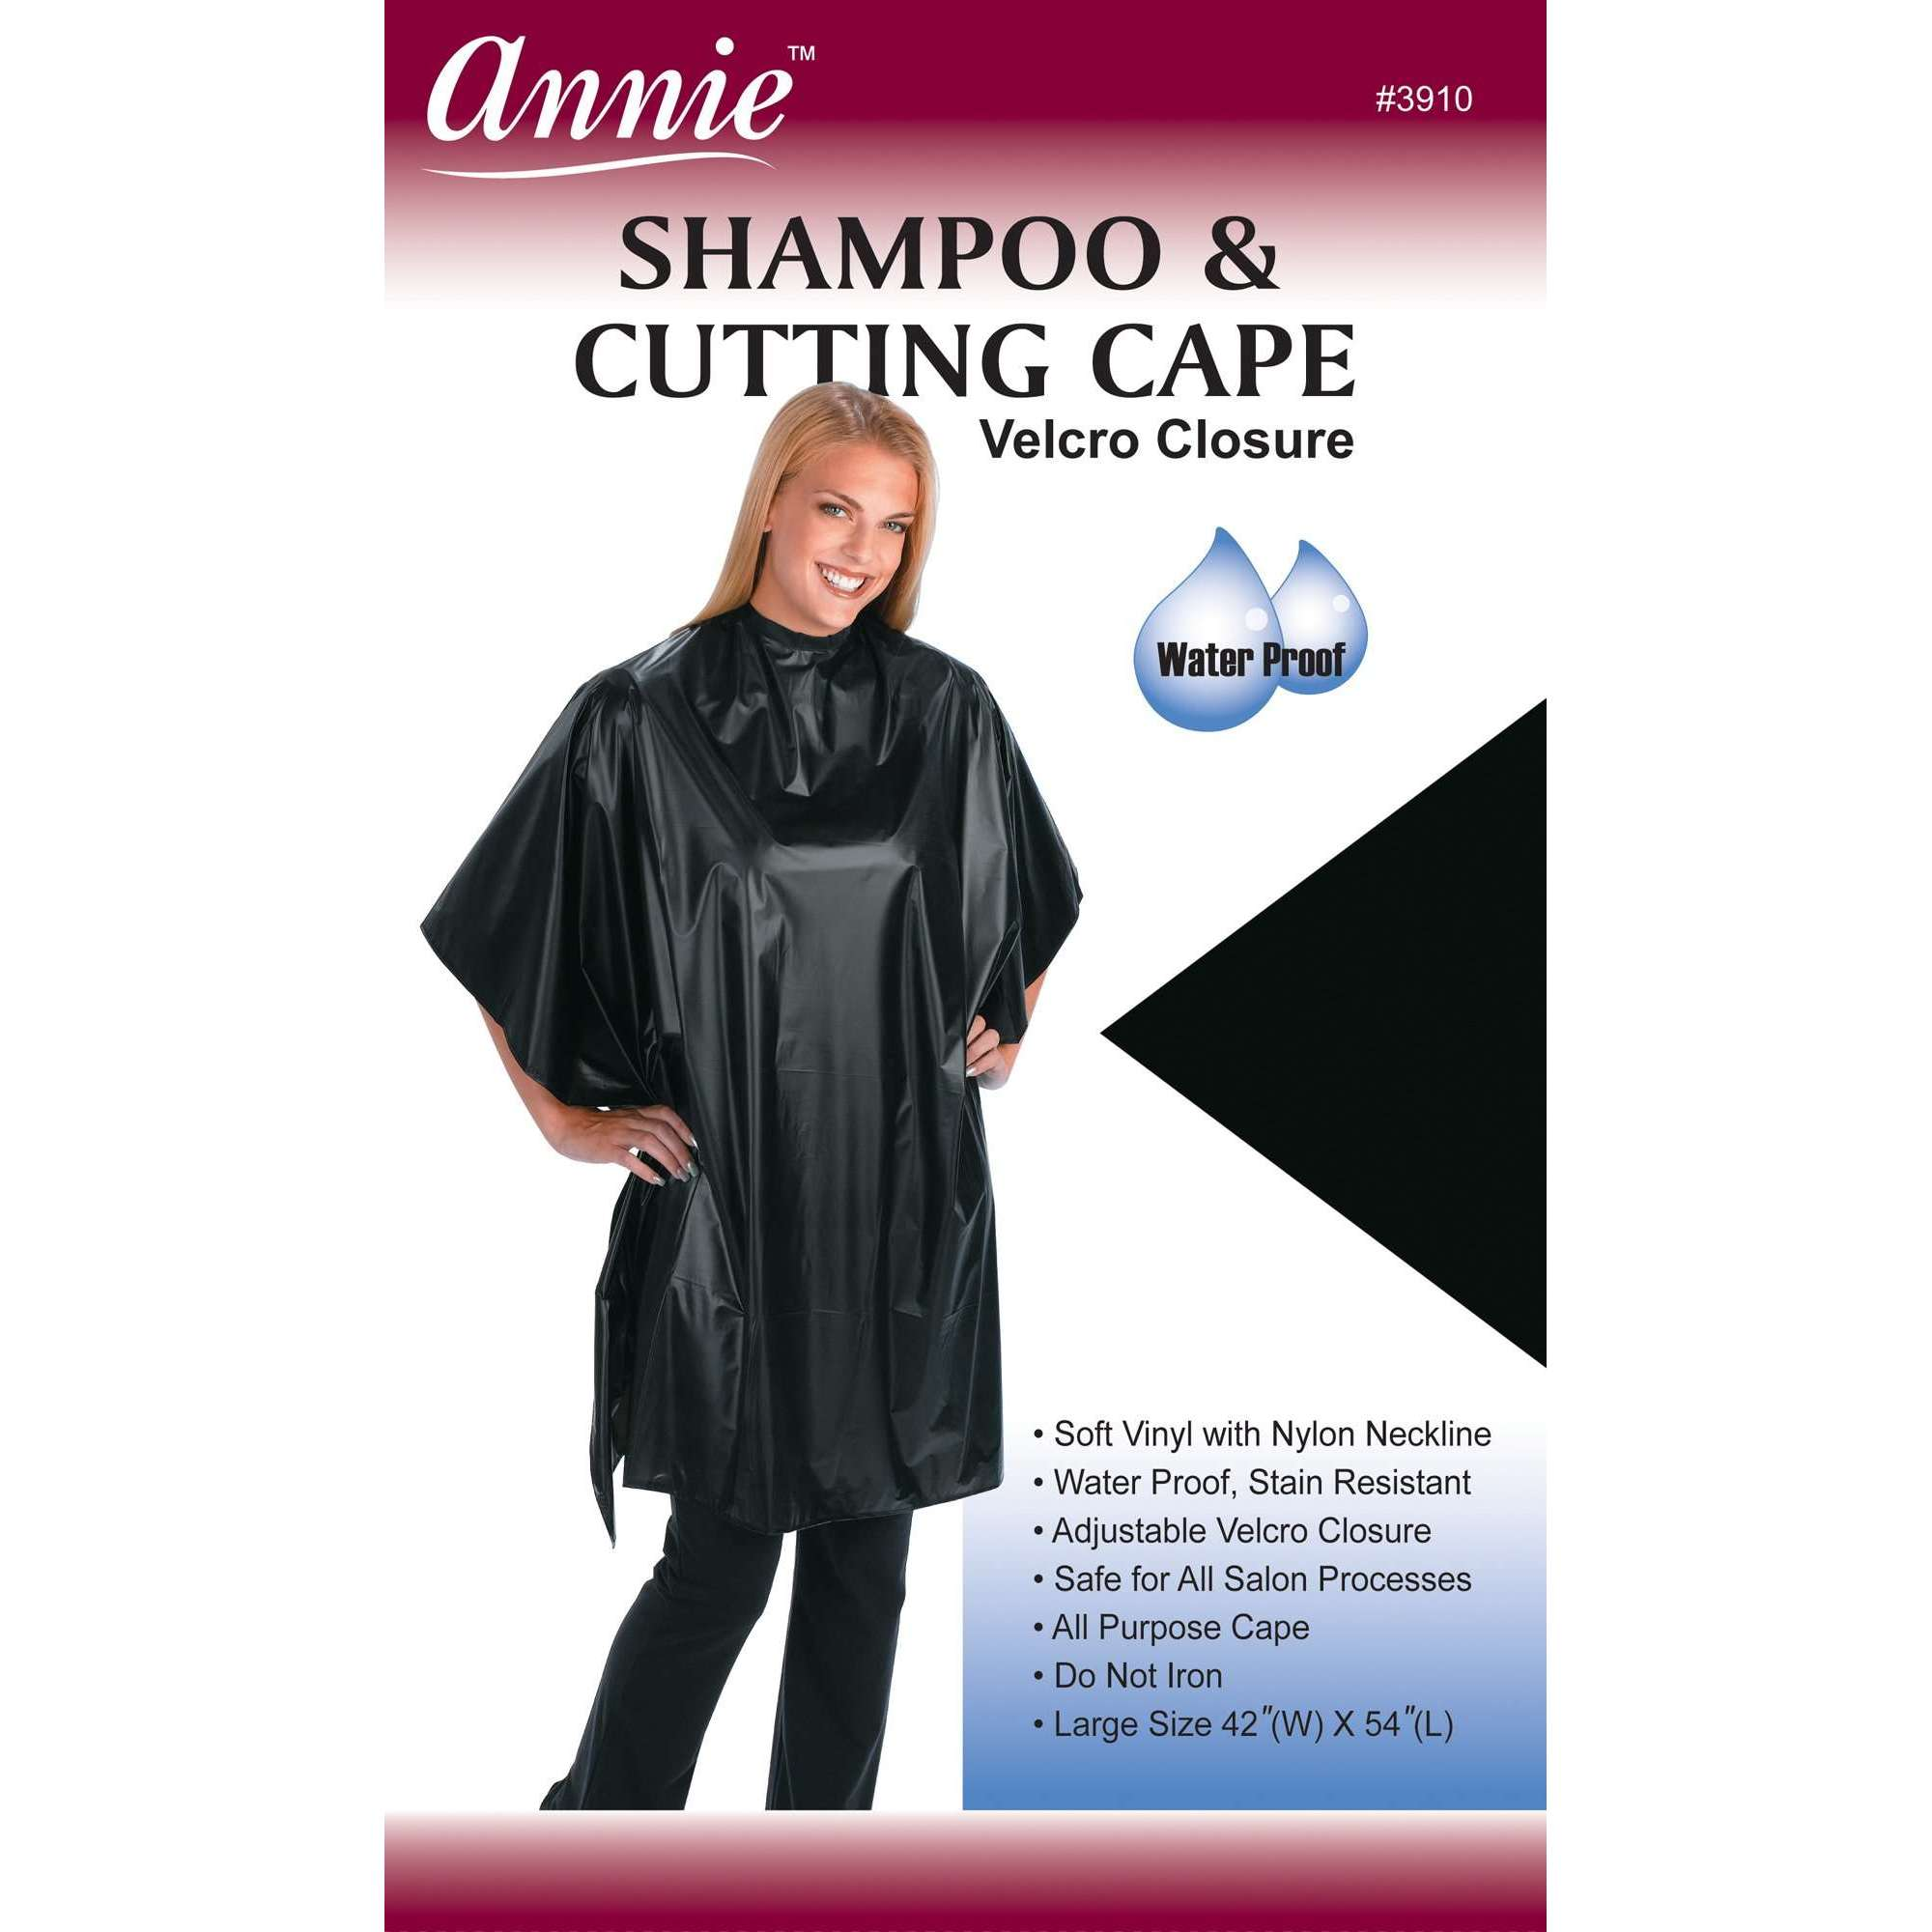 Annie Shampoo / Cutting Cape